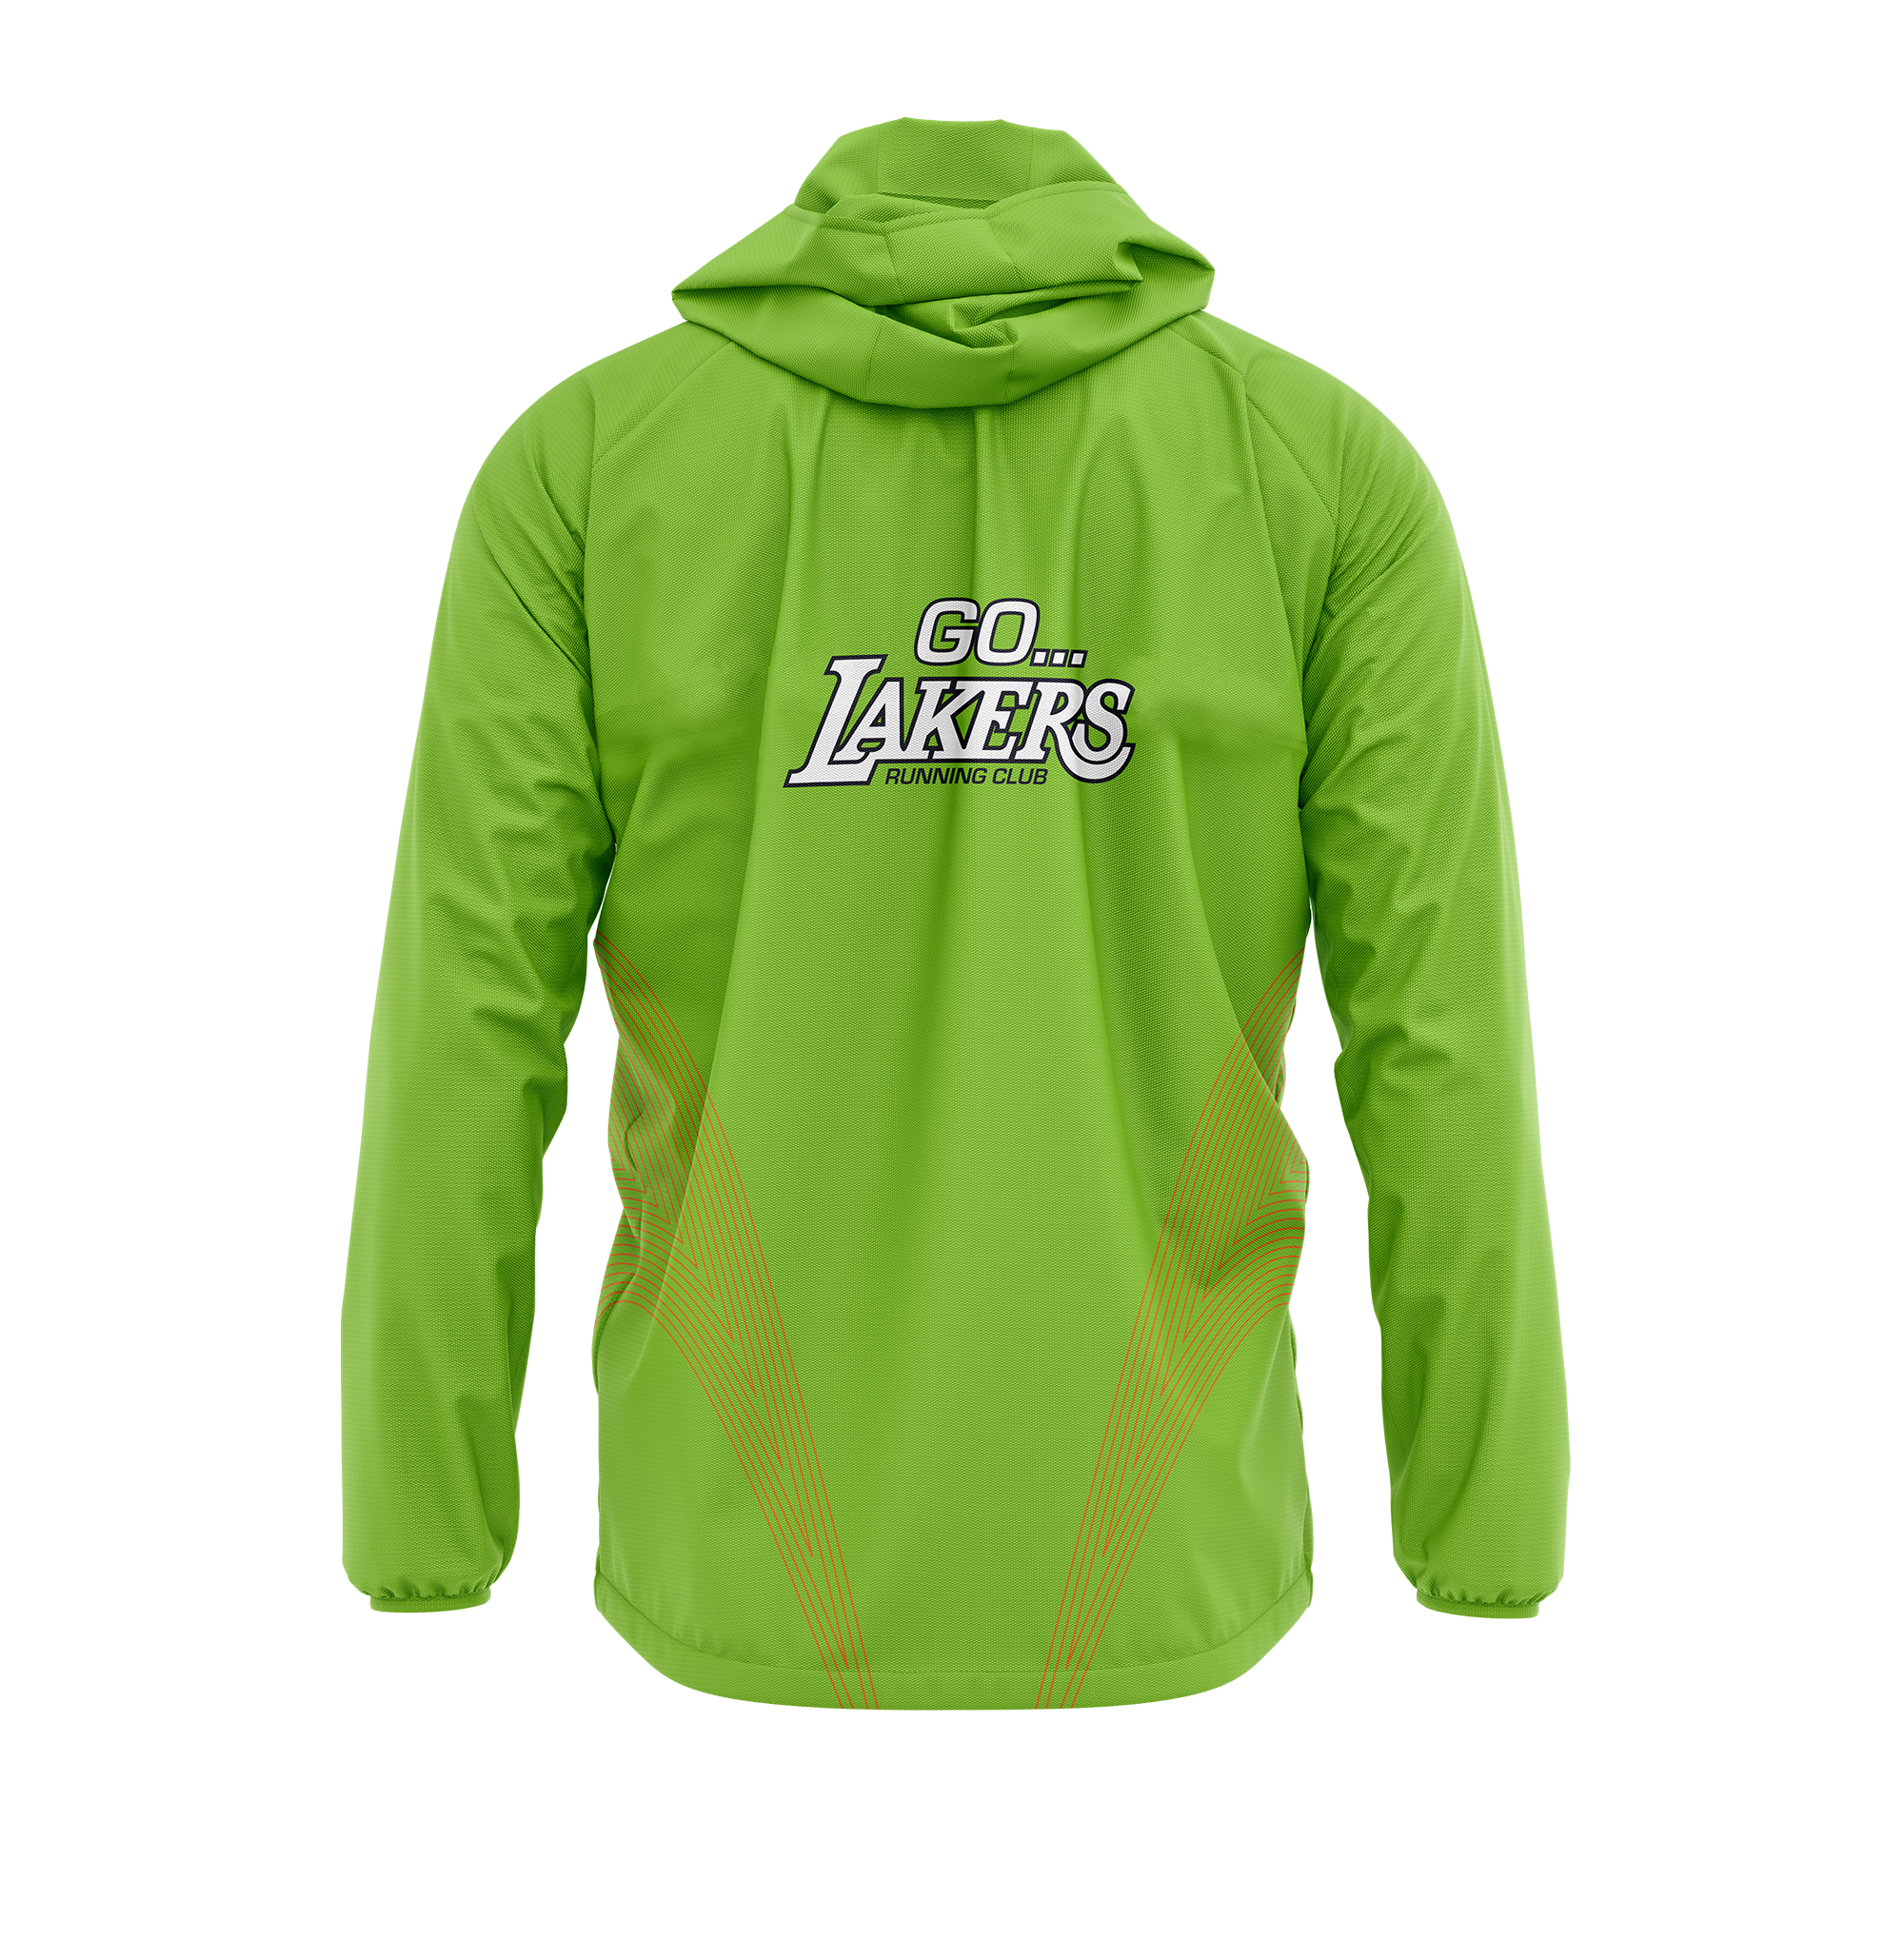 Lakers Custom Running Jacket